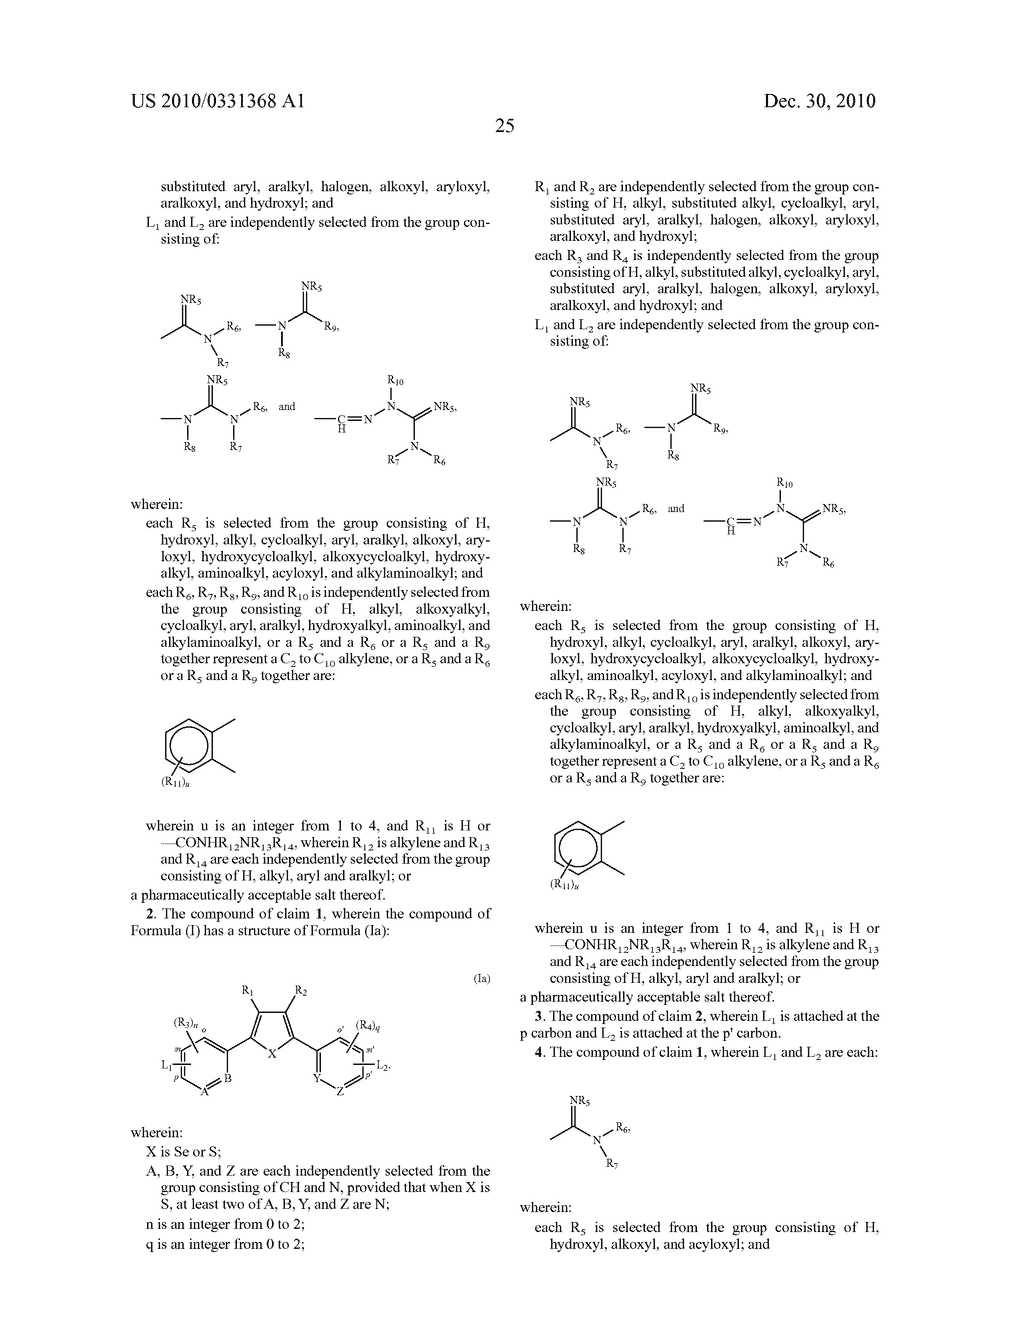 2,5-DIARYL SELENOPHENE COMPOUNDS, AZA 2,5-DIARYL THIOPHENE COMPOUNDS, AND THEIR PRODRUGS AS ANTIPROTOZOAL AGENTS - diagram, schematic, and image 26